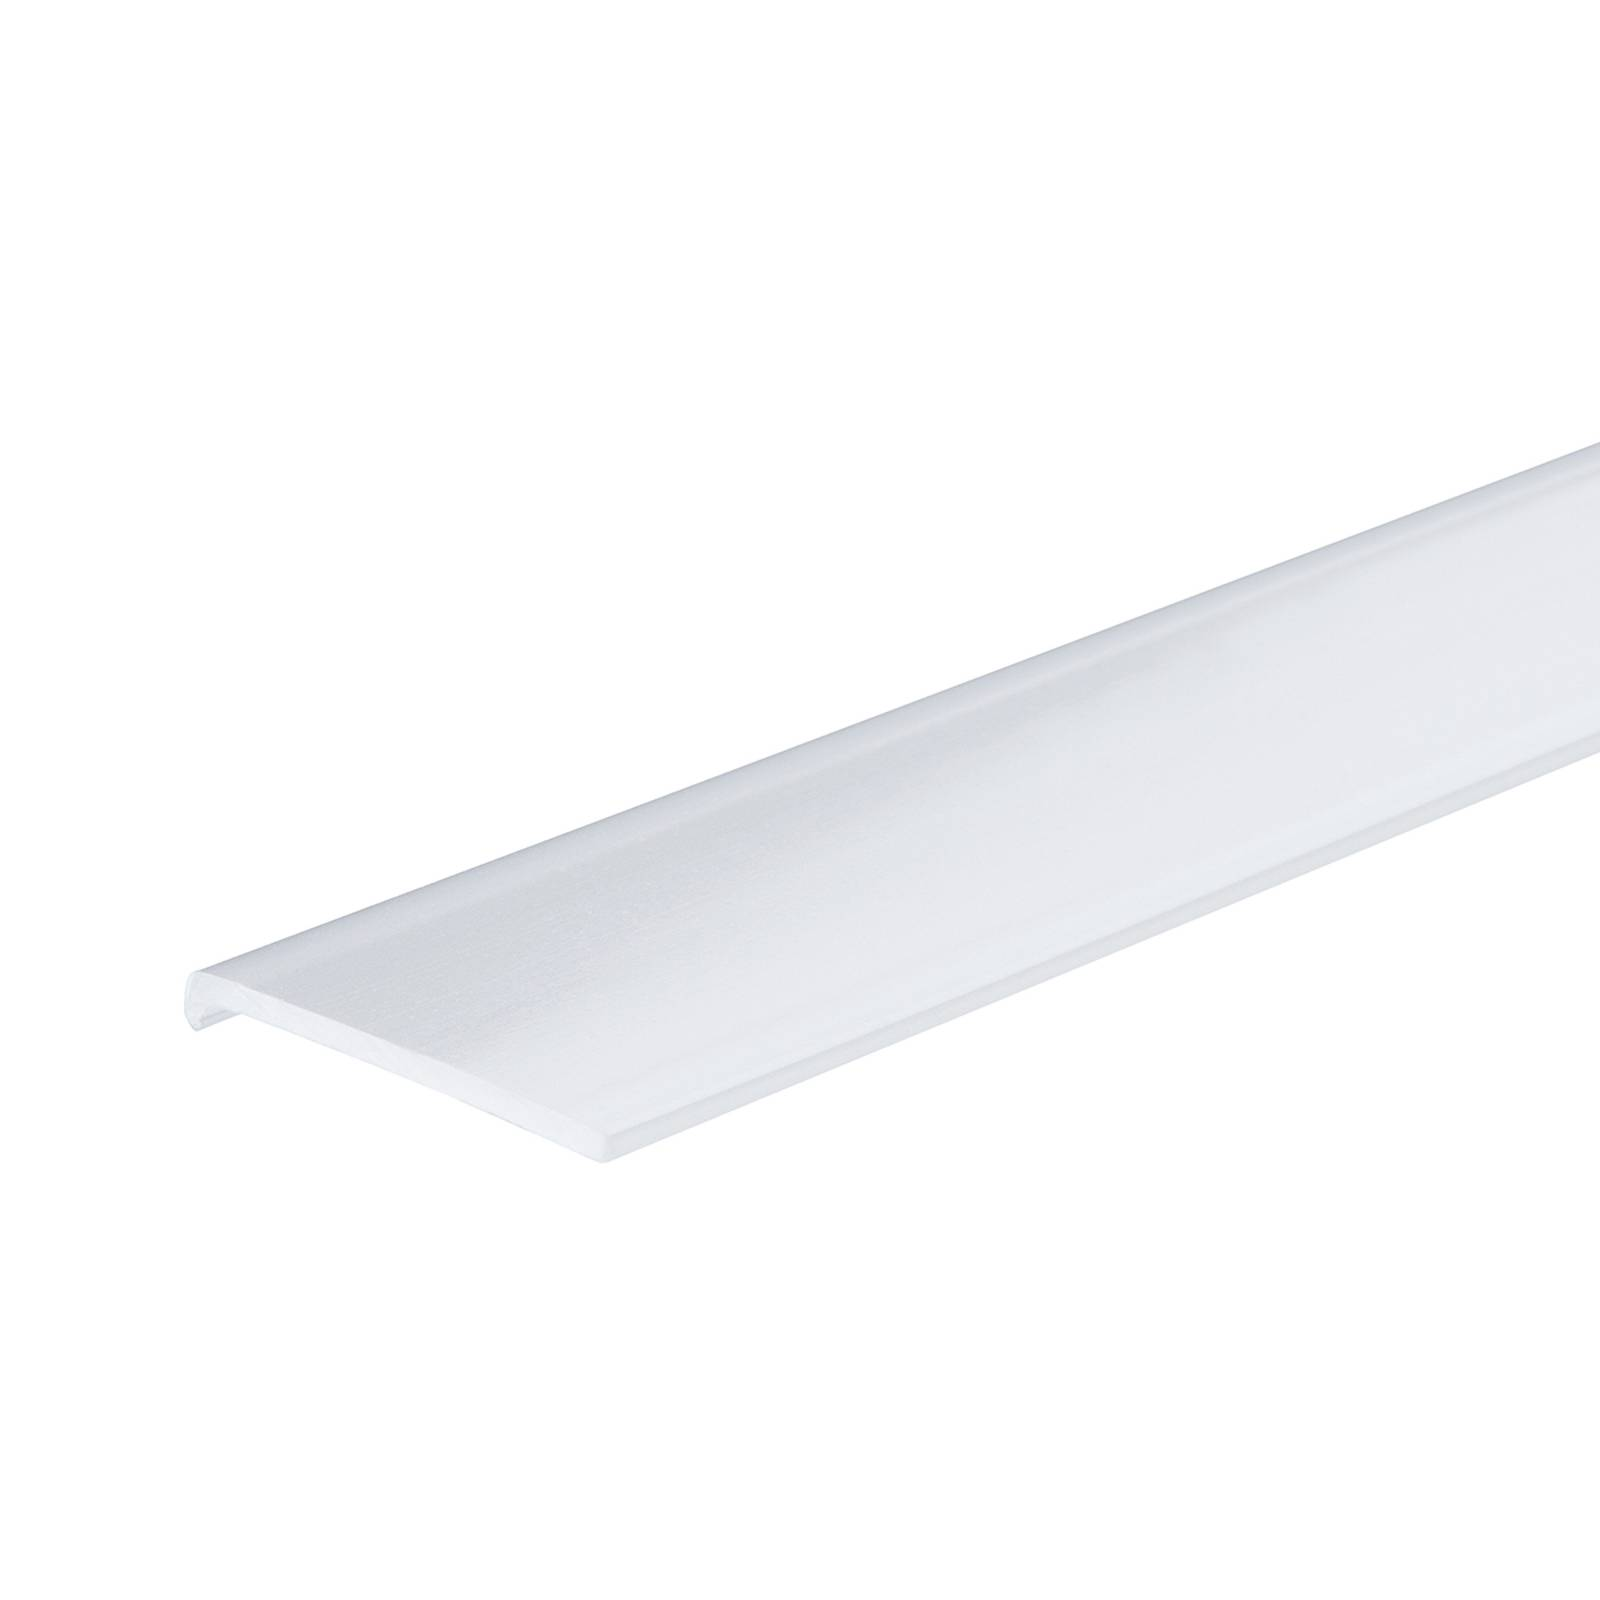 Duo Profile Diffuser 2 m for LED strip system from Paulmann